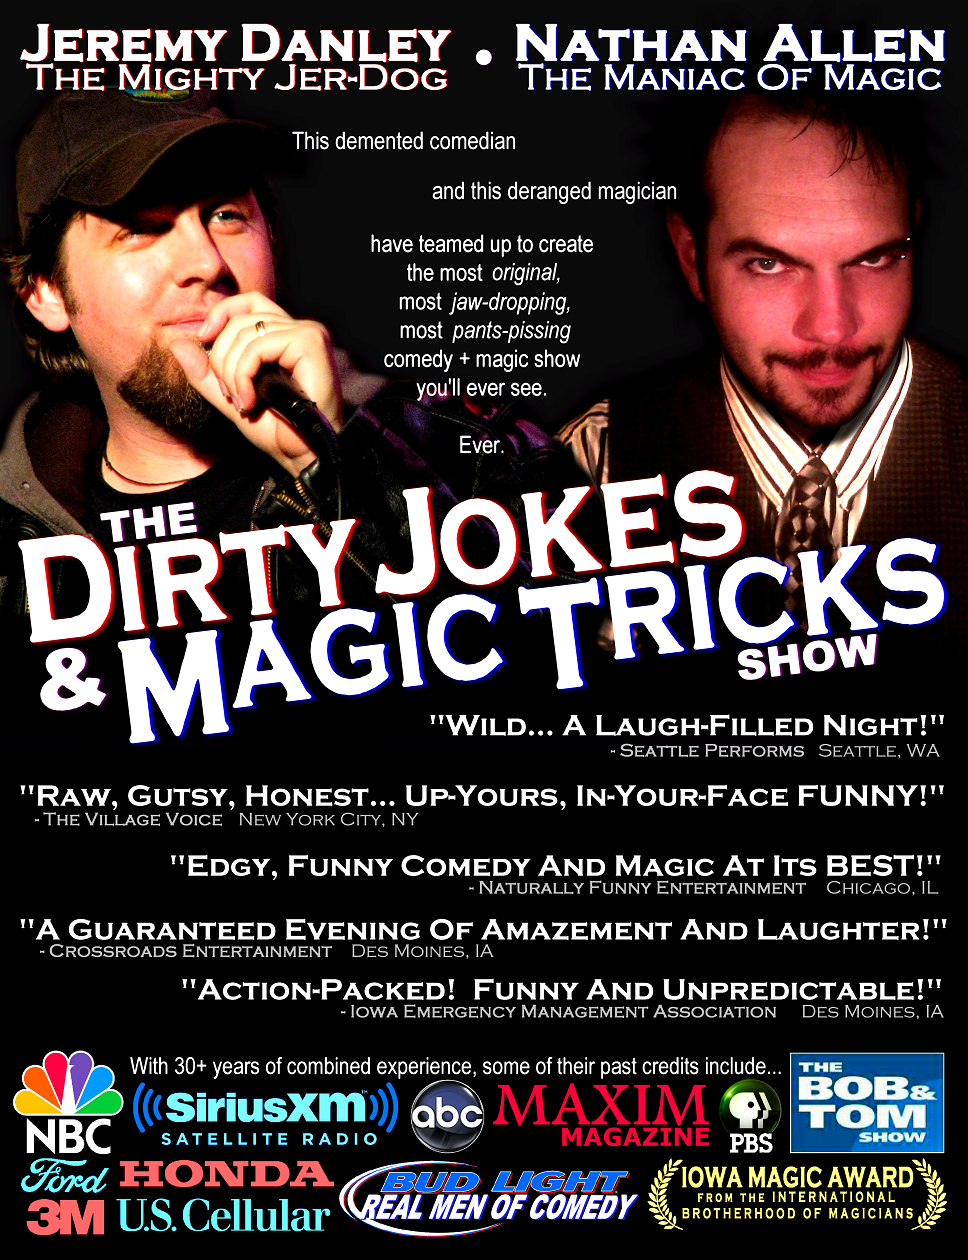 DIRTY JOKES AND MAGIC TRICKS generic poster Nathan Allen The Maniac of Magic Comedian Magician Entertainer Entertainment Des Moines Iowa